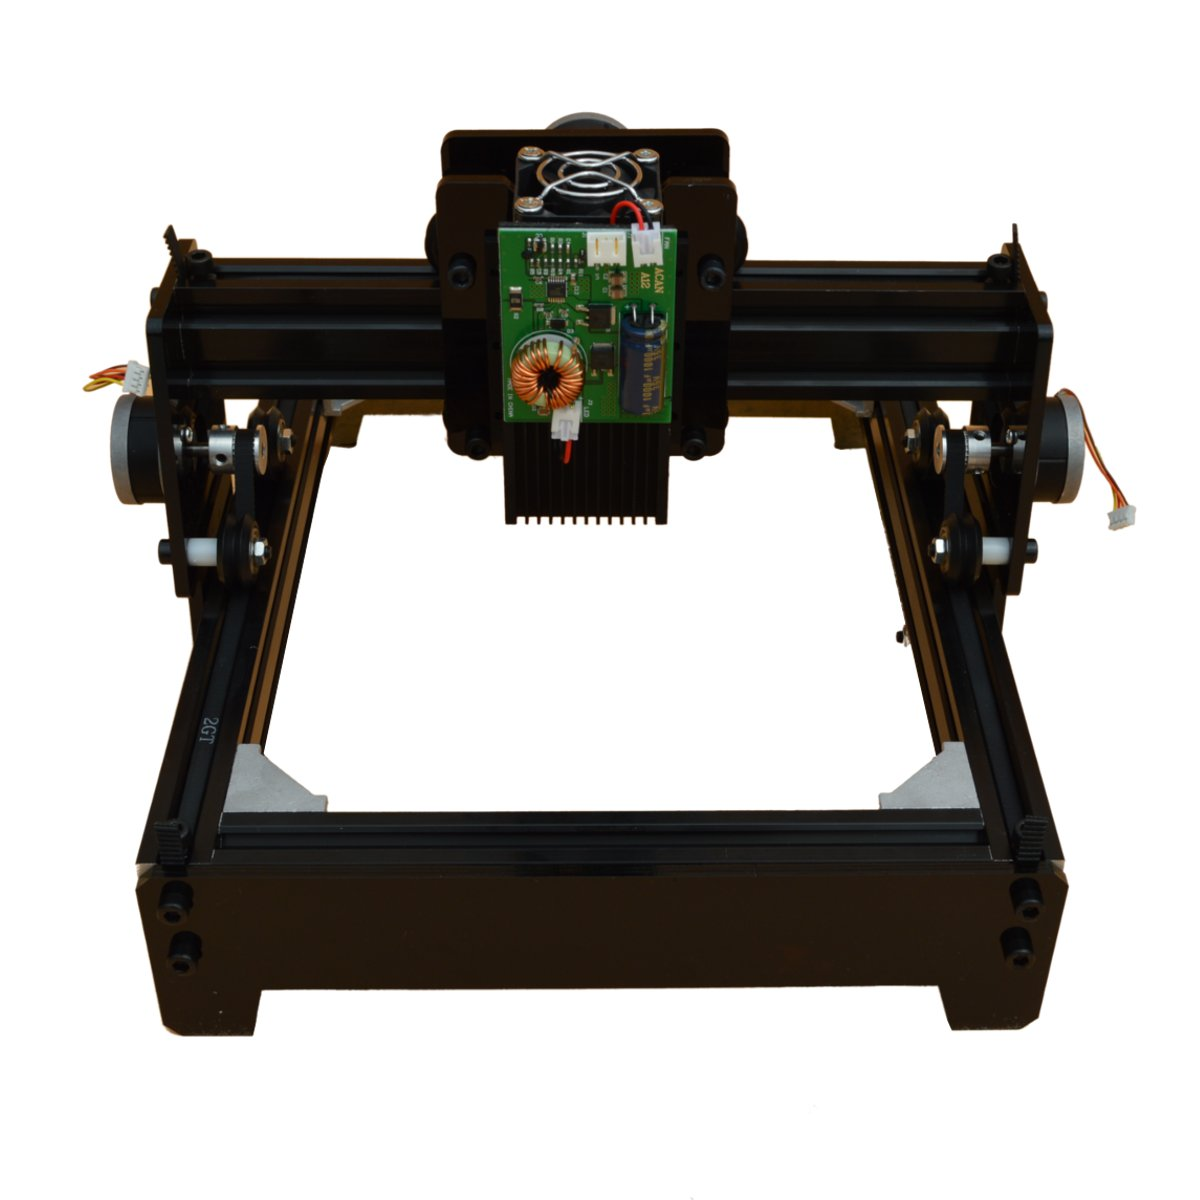 15W DIY Mini <font><b>CNC</b></font> Laser Engraving Machine Laser Engraving Wood Router Metal Marking Engraving <font><b>2018</b></font> Best Advanced Toys New Arrival image